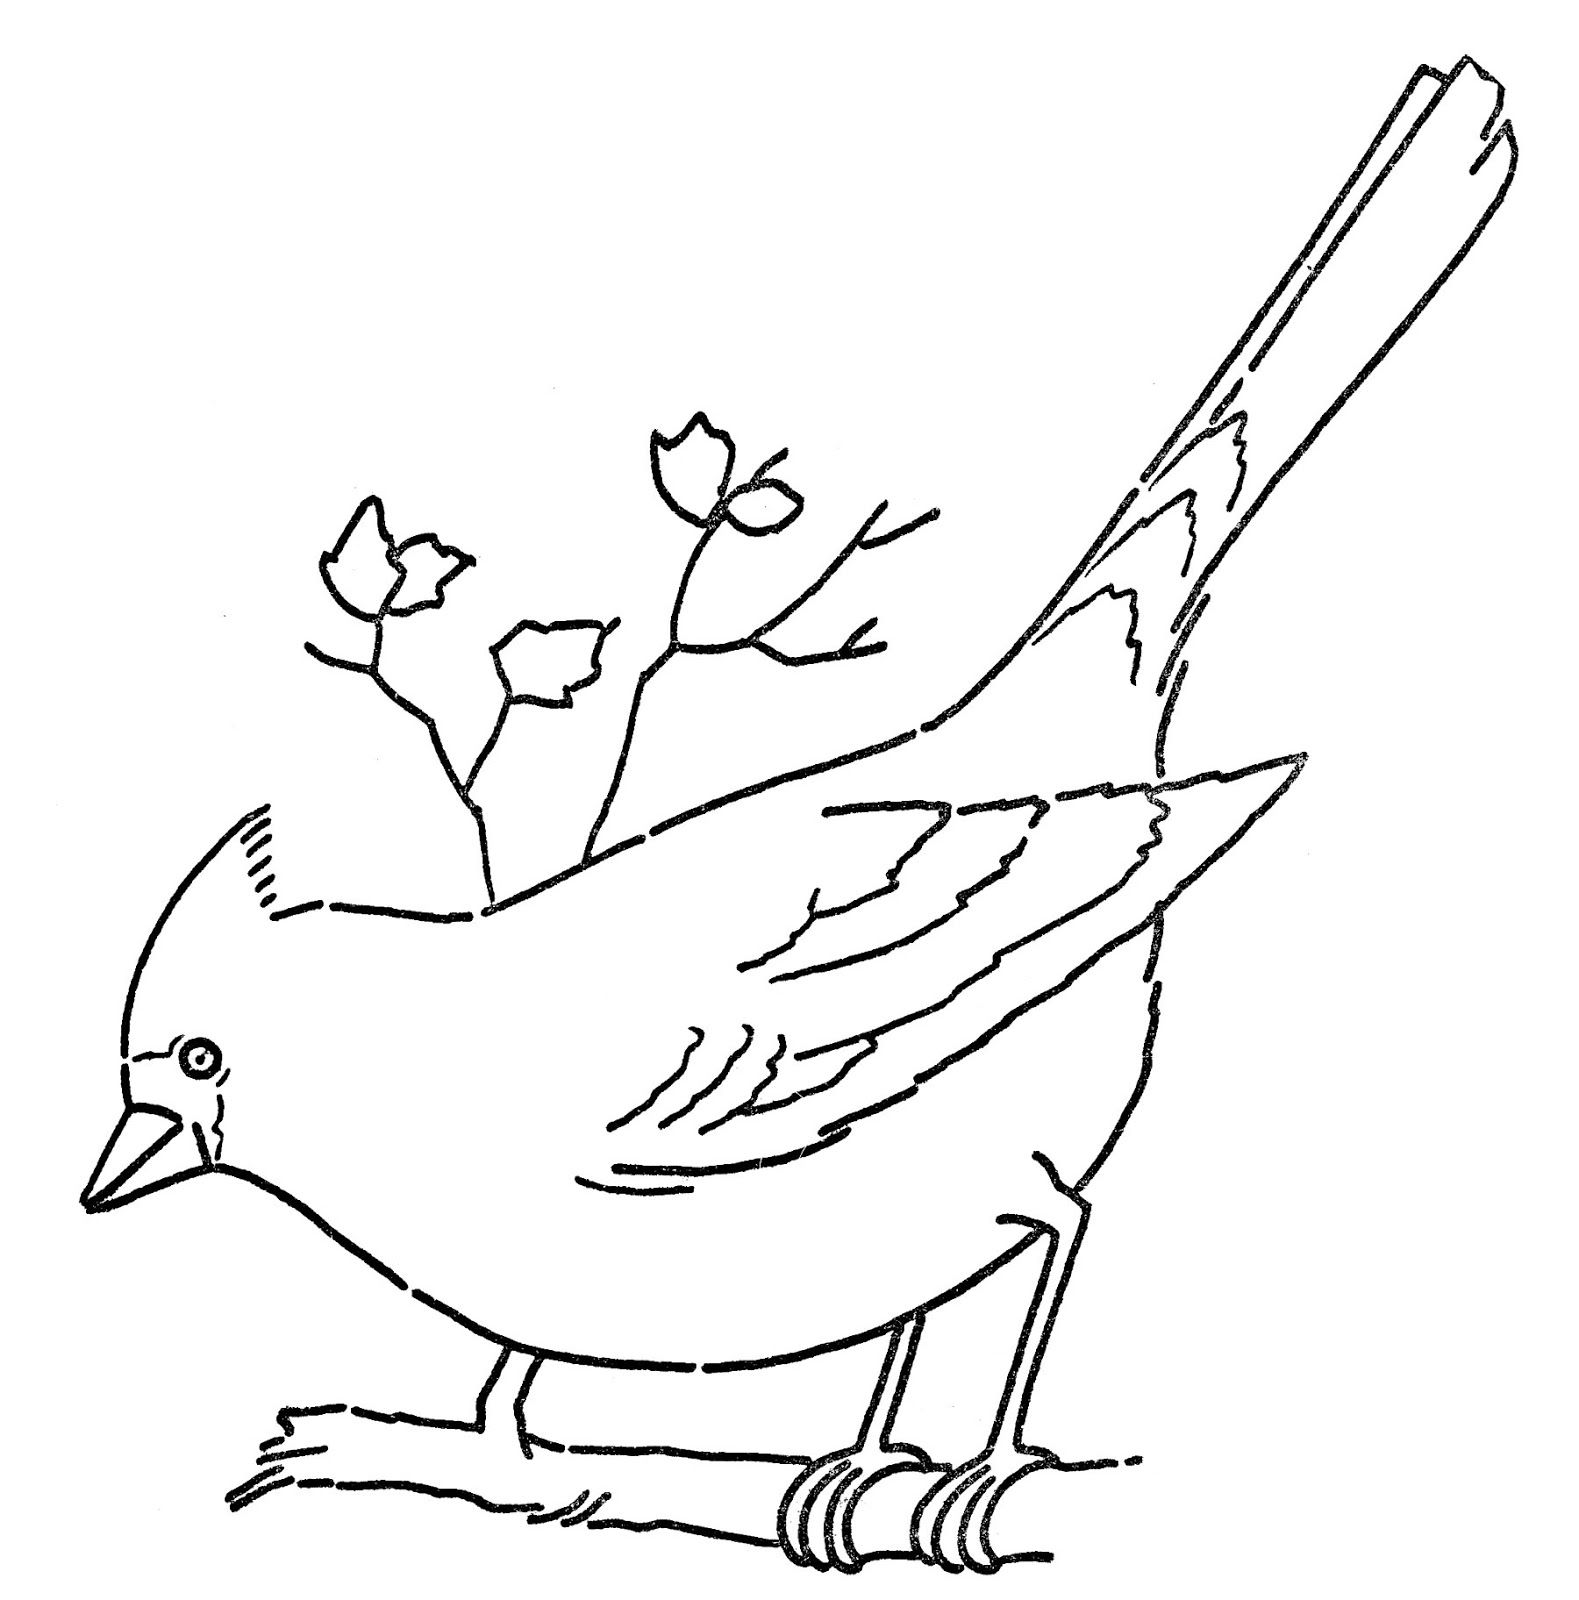 listellos line art coloring pages - photo#3